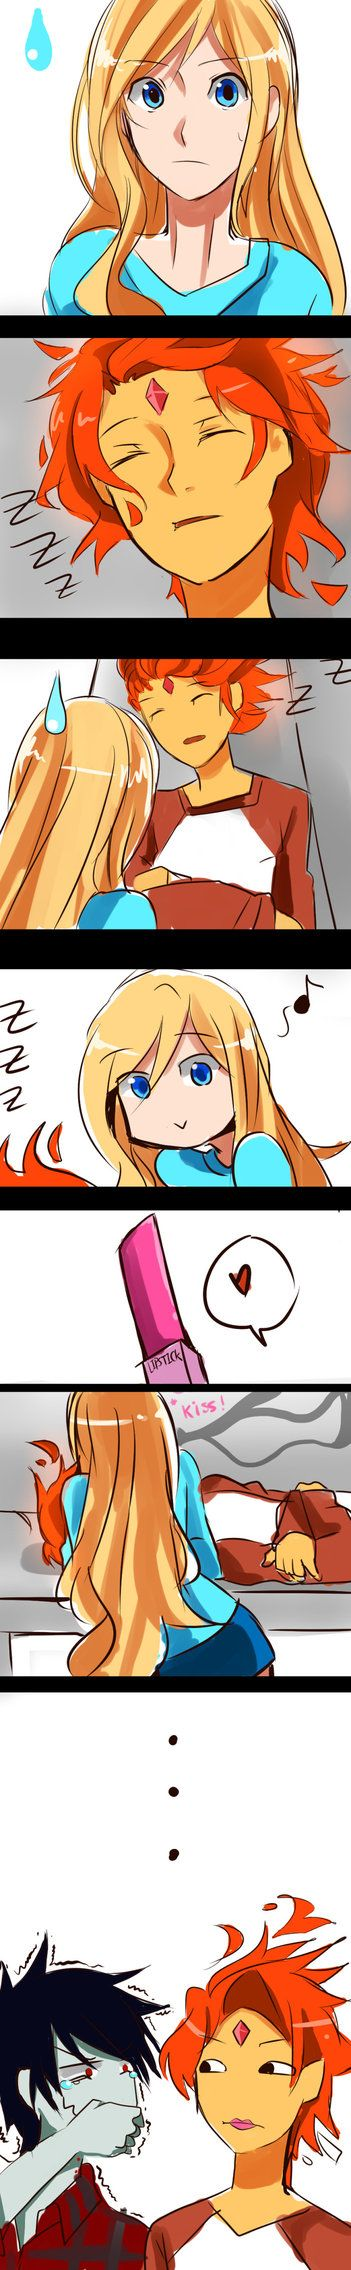 Adventure Time Flame Prince Comic Flame Prince x Fionna ...